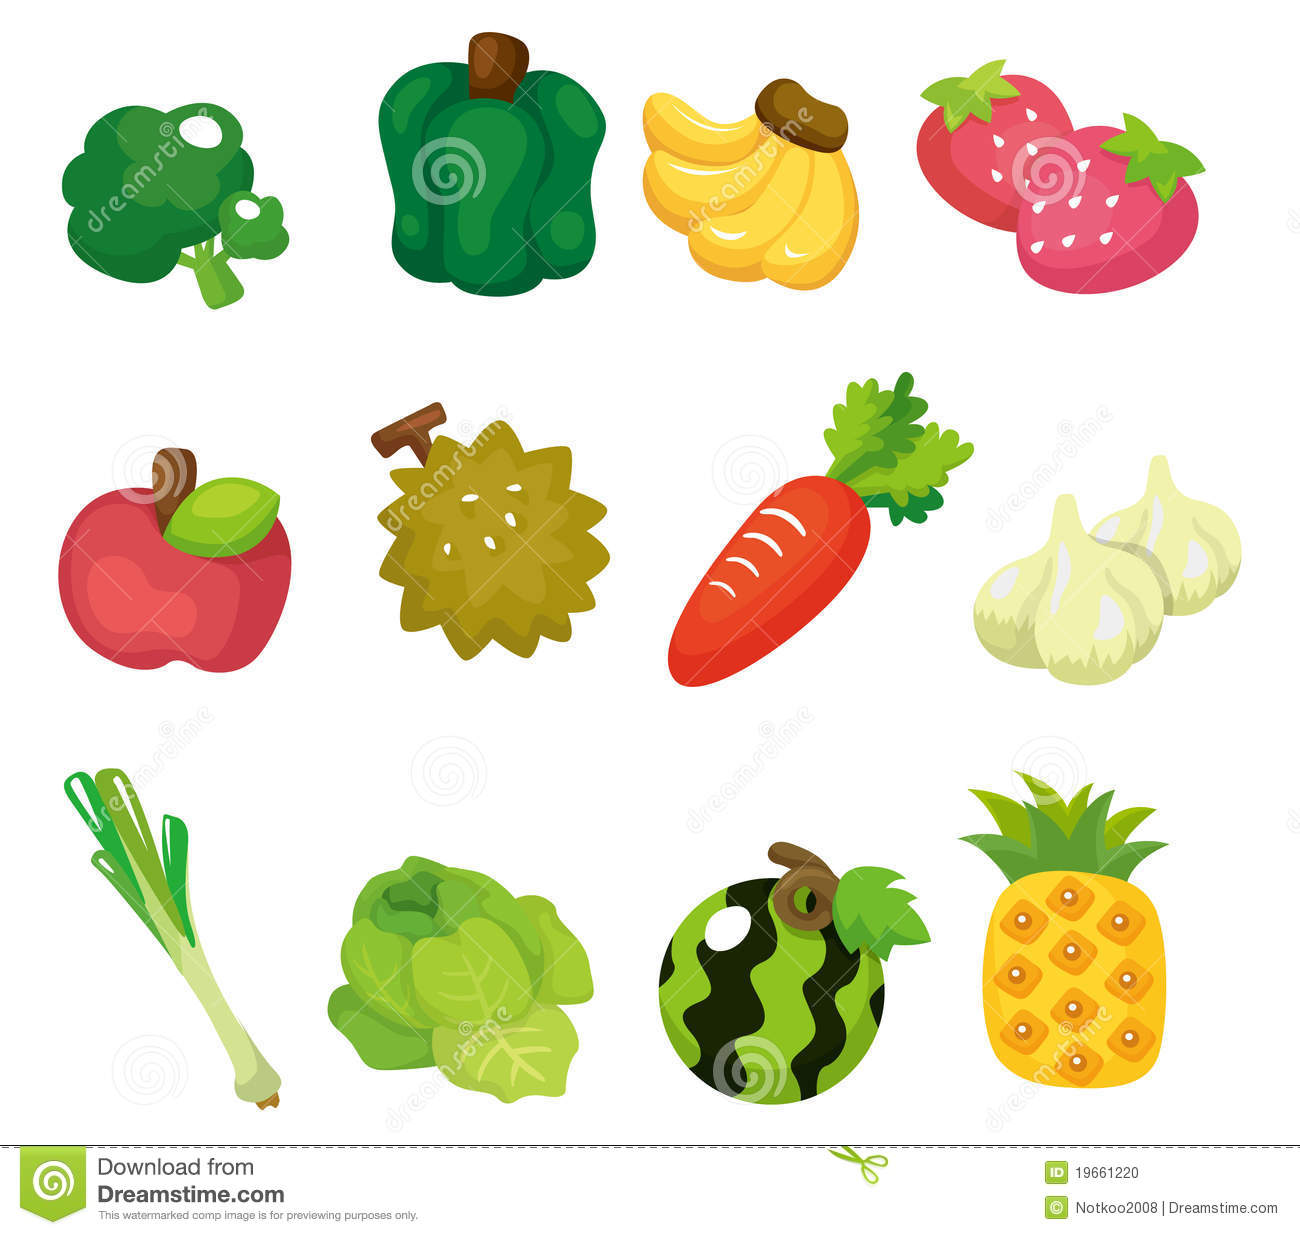 positionnement de graphisme de fruits et lgumes de dessin anim photo stock - Dessin De Lgumes